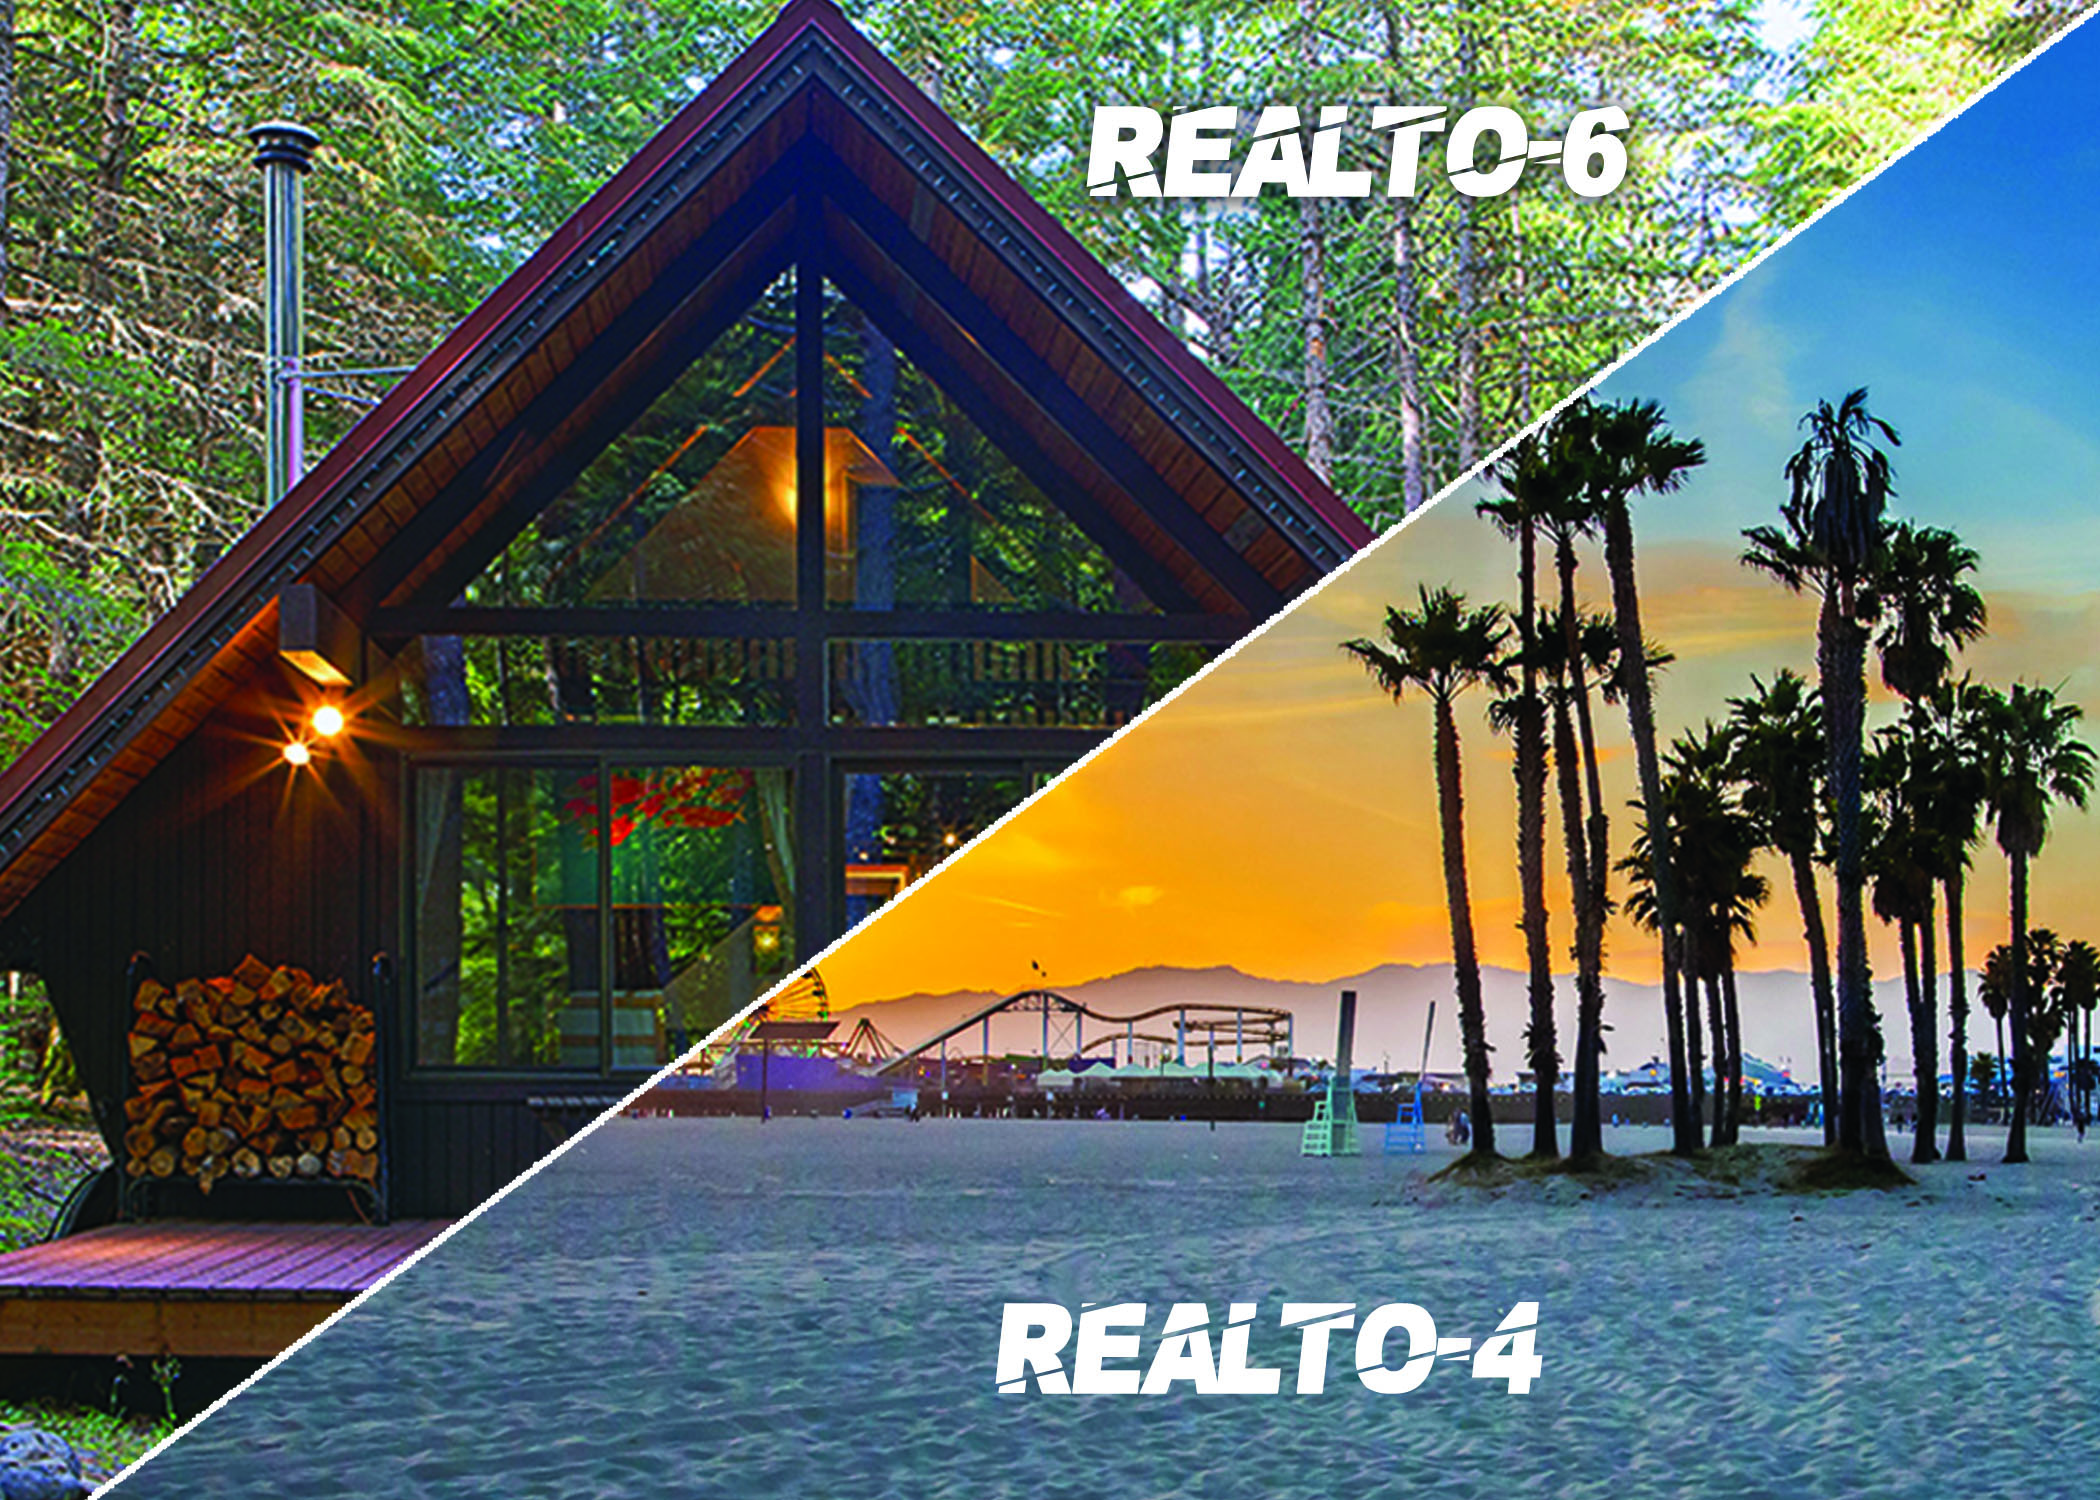 To switch communities, citizens can submit applications through Realto-1 and the Scientific Council will process and grant requests. Each citizen may relocate up to three (3) times during our stay in REALTO™.